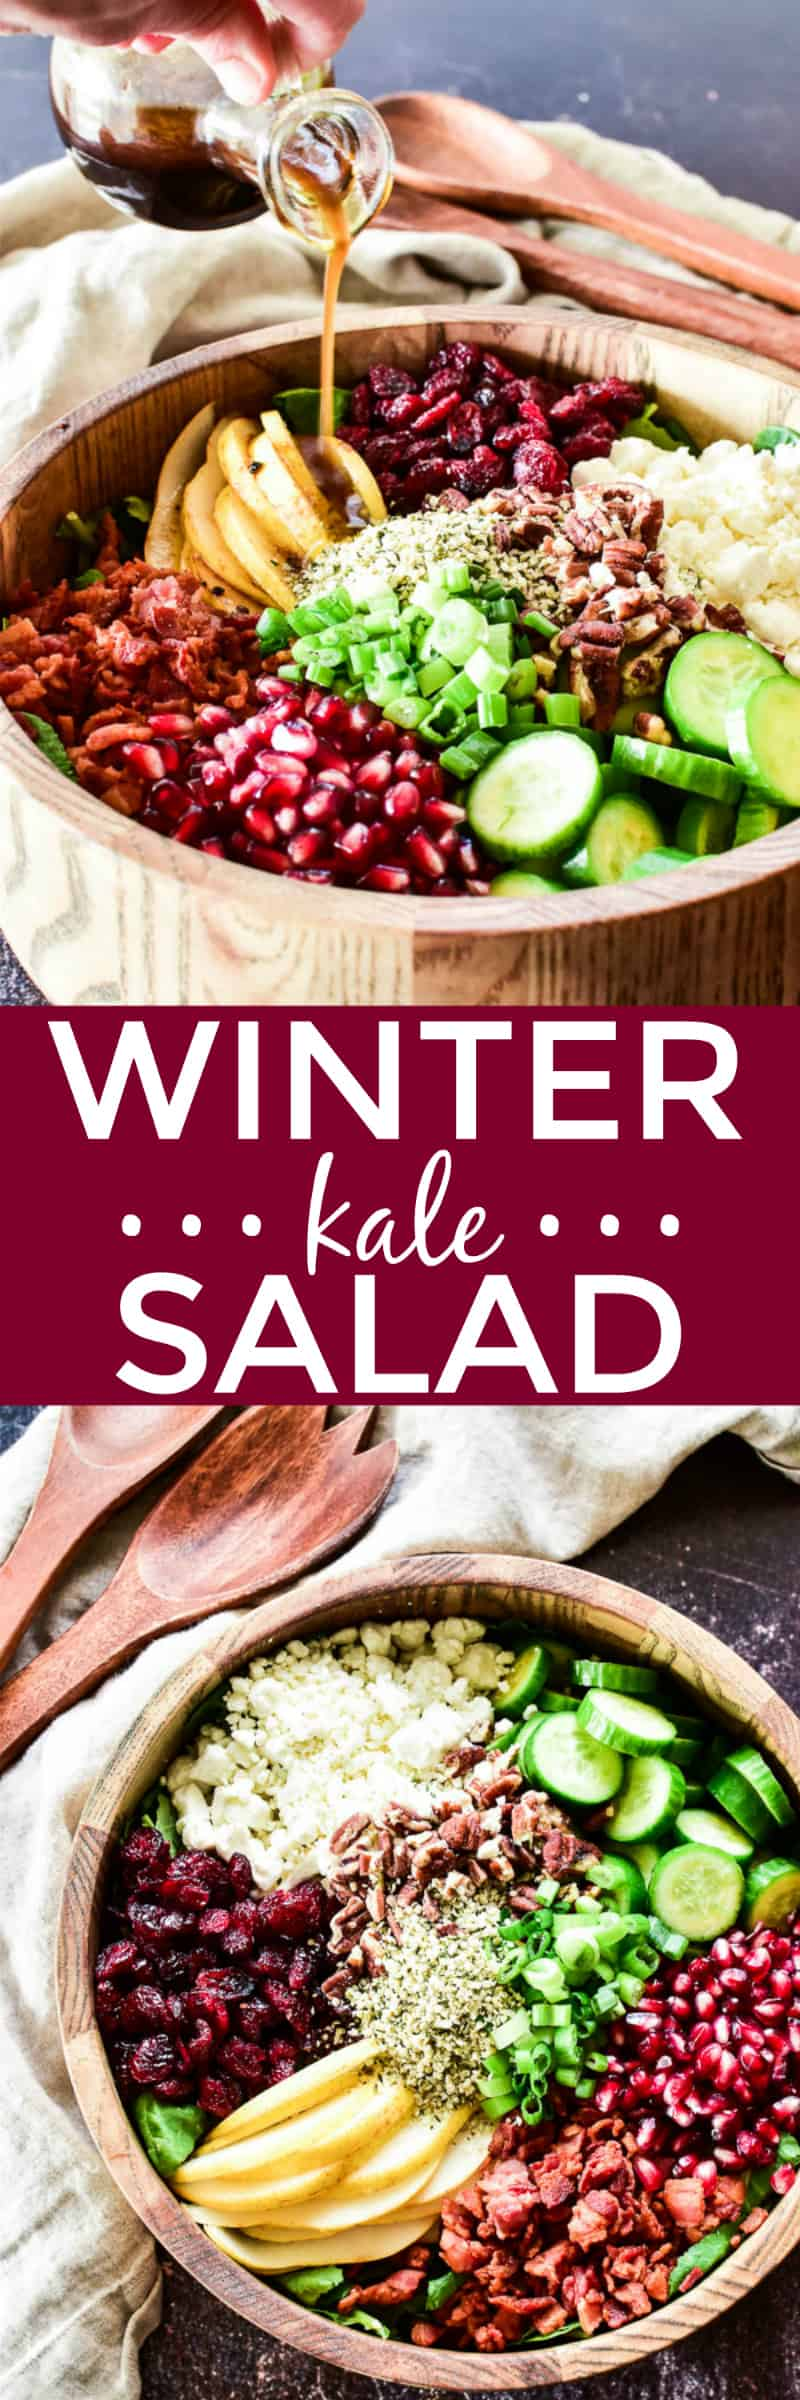 Collage image of Winter Kale Salad